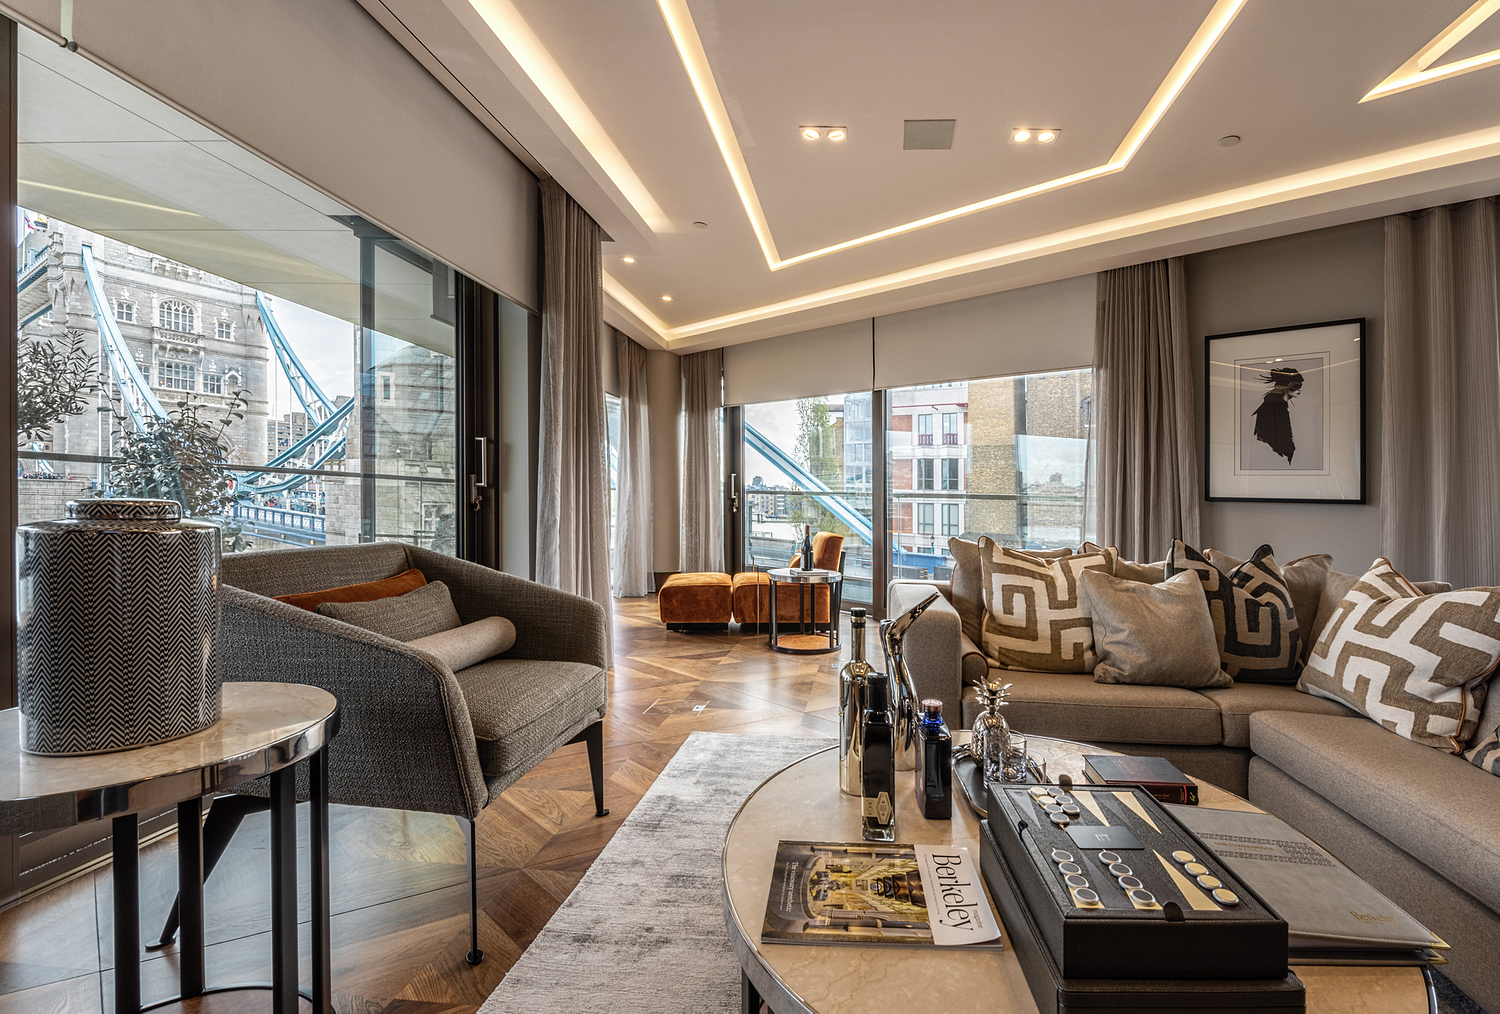 Sitting room with view of Tower Bridge, London